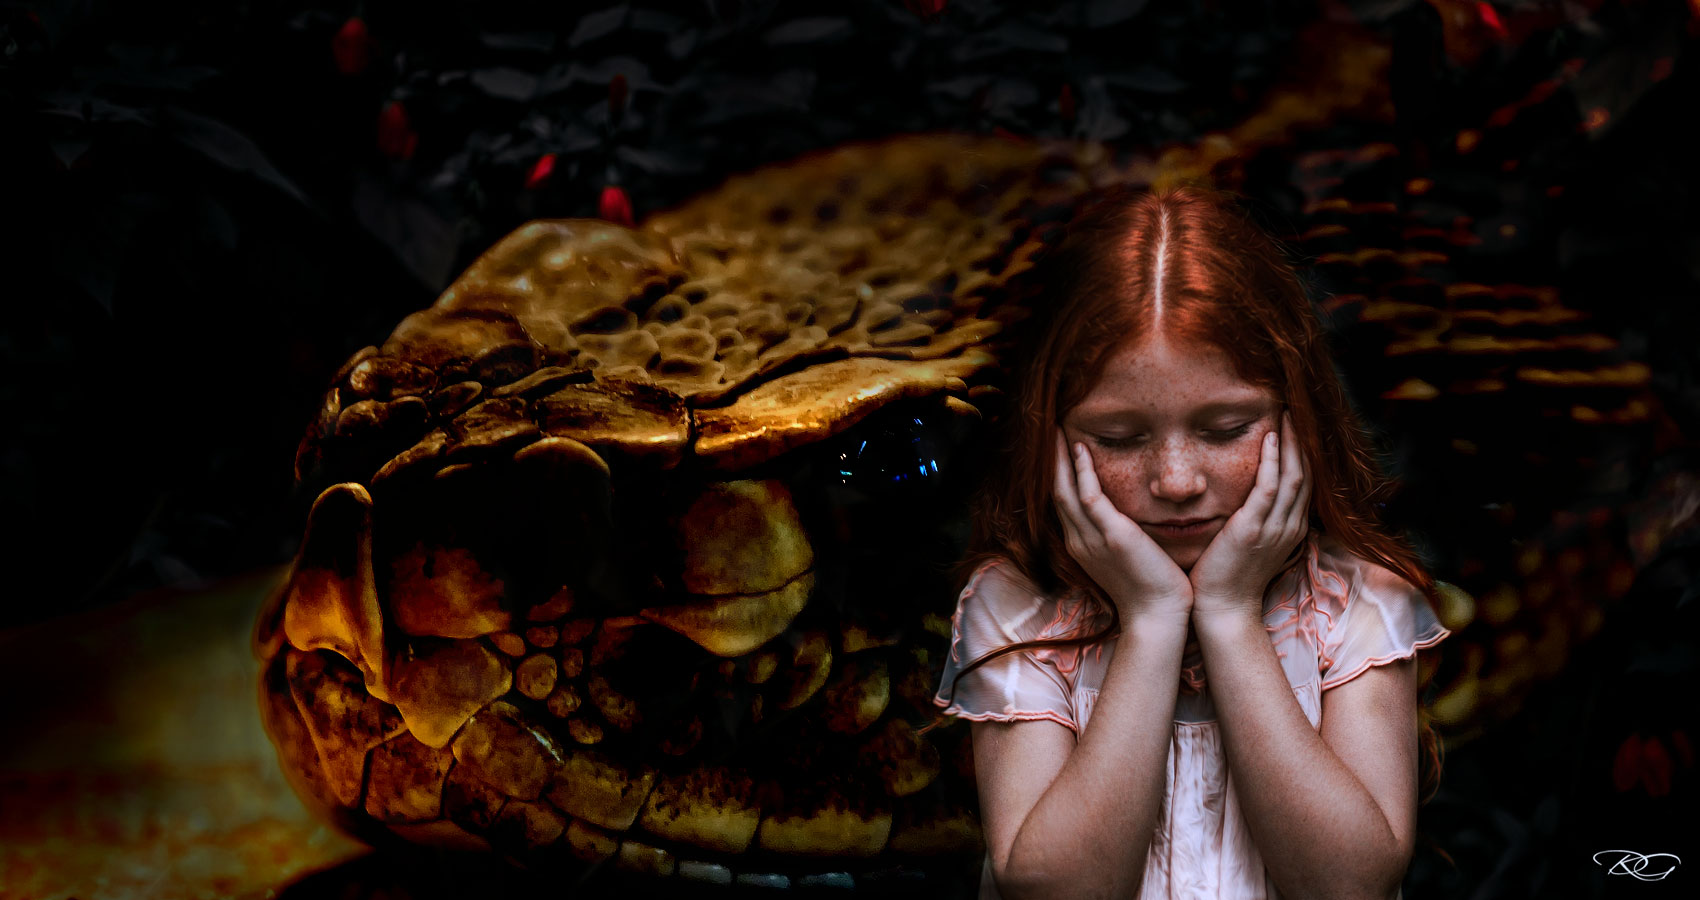 The Girl And The Snake, a short story by Ryan Kat Spillwords.com